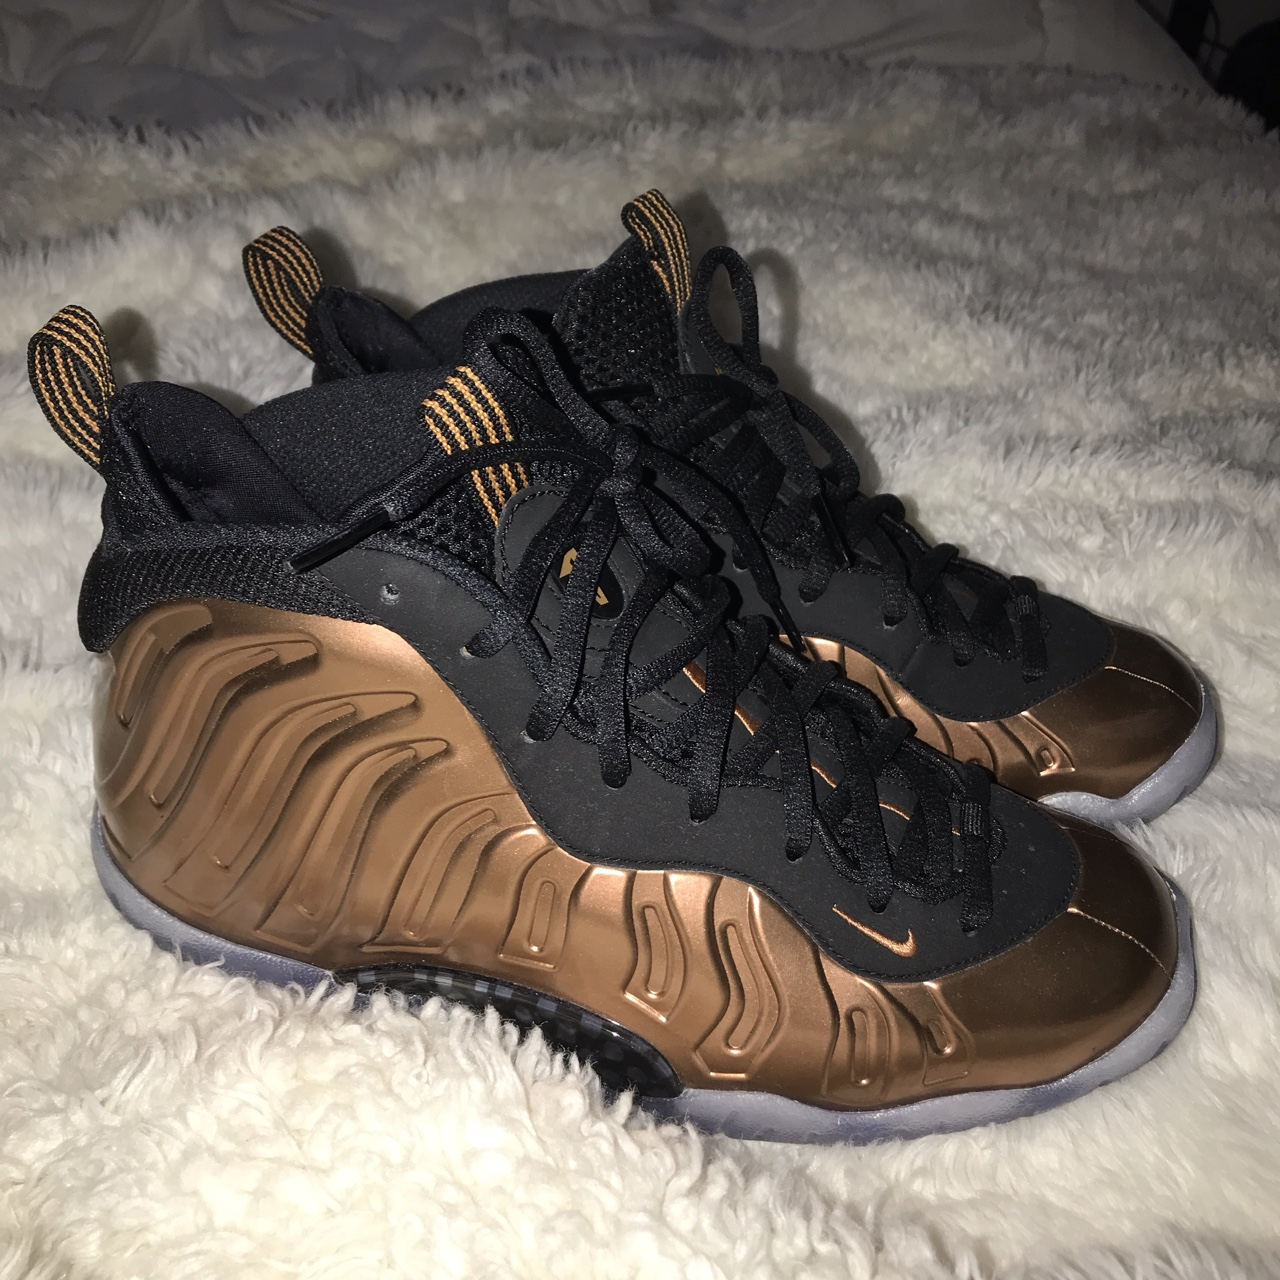 new styles 8786a 6c20a Rose gold Nike foamposites. Perfect condition, no... - Depop